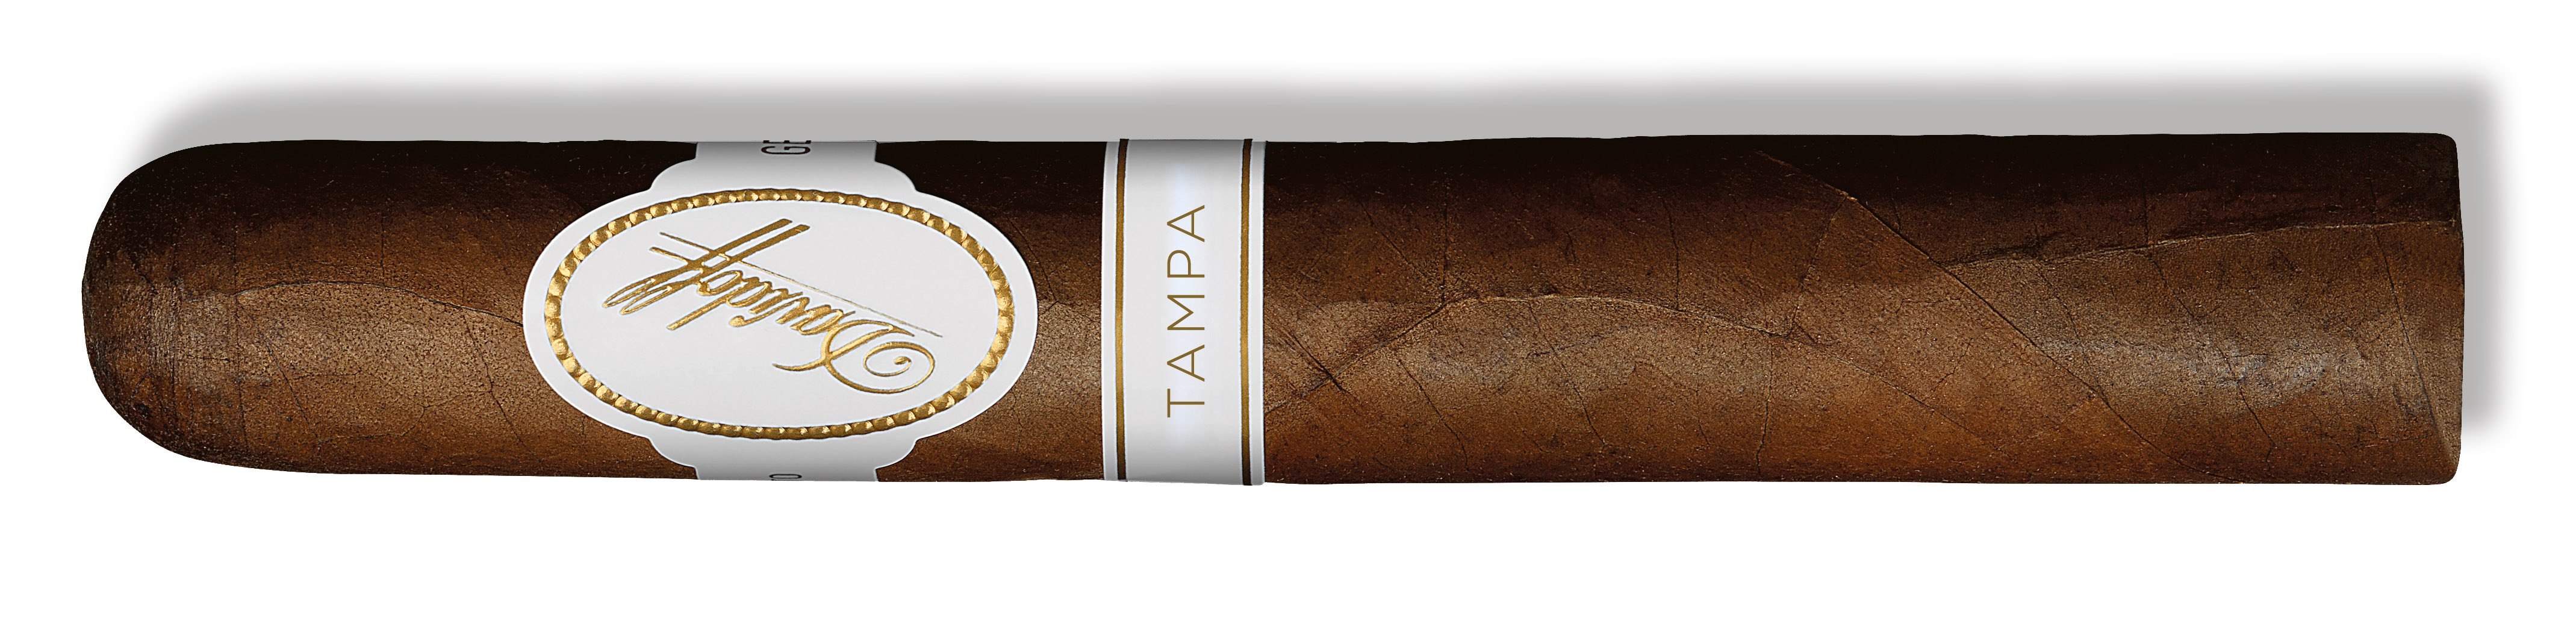 Davidoff_Exclusive_Tampa